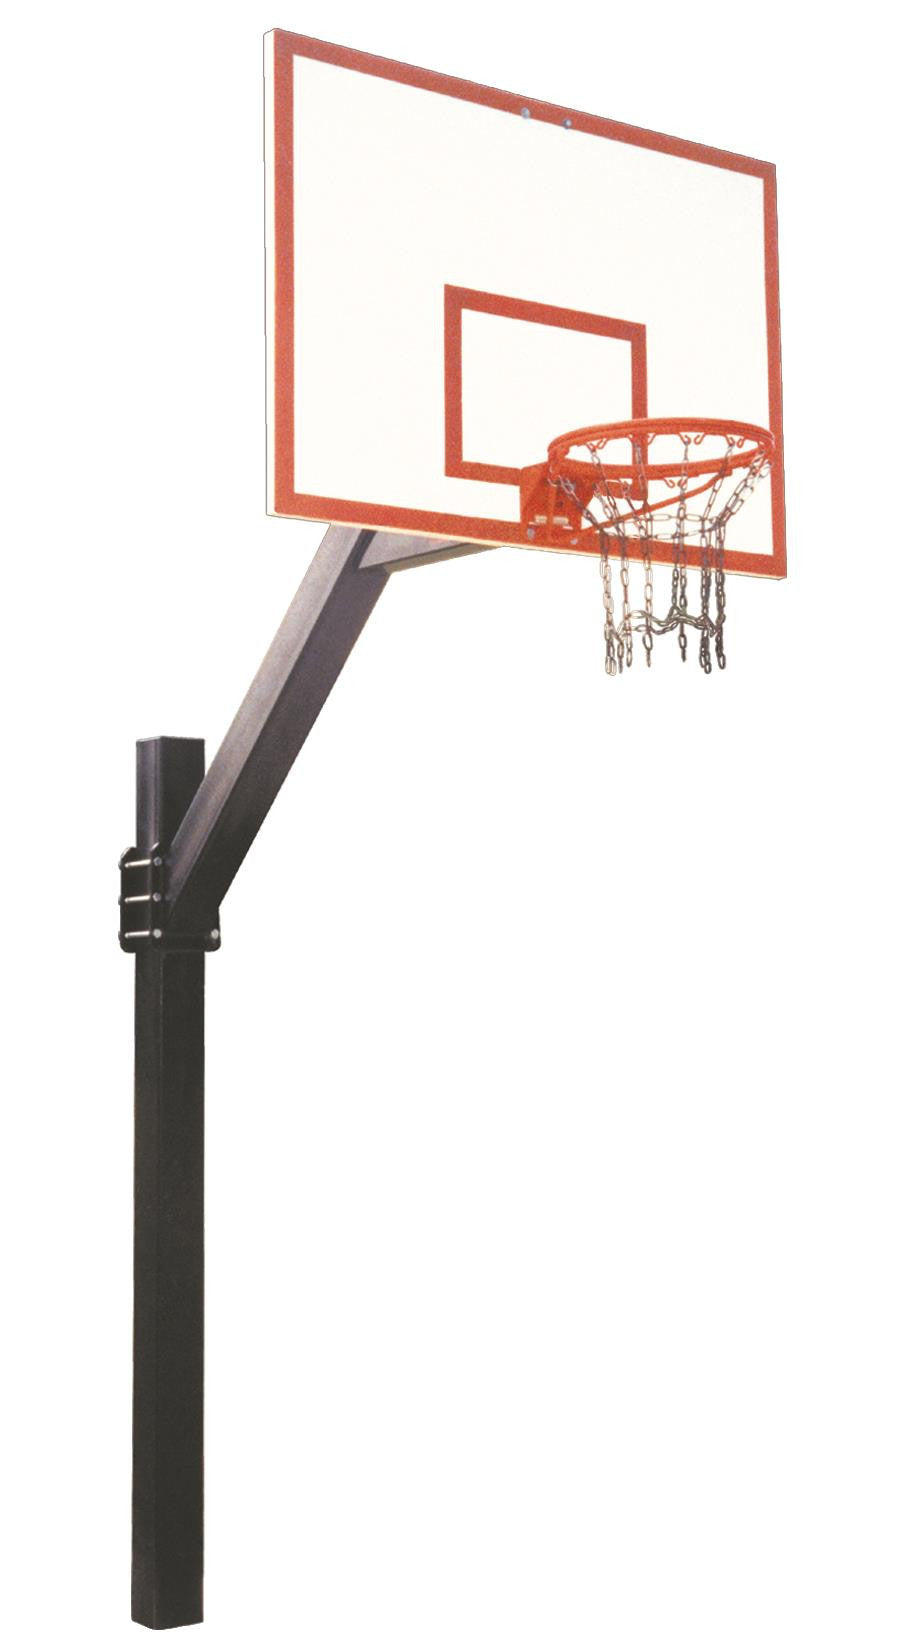 First Team Legend Dynasty In Ground Fixed Height Outdoor Basketball Hoop 72 inch Fiberglass